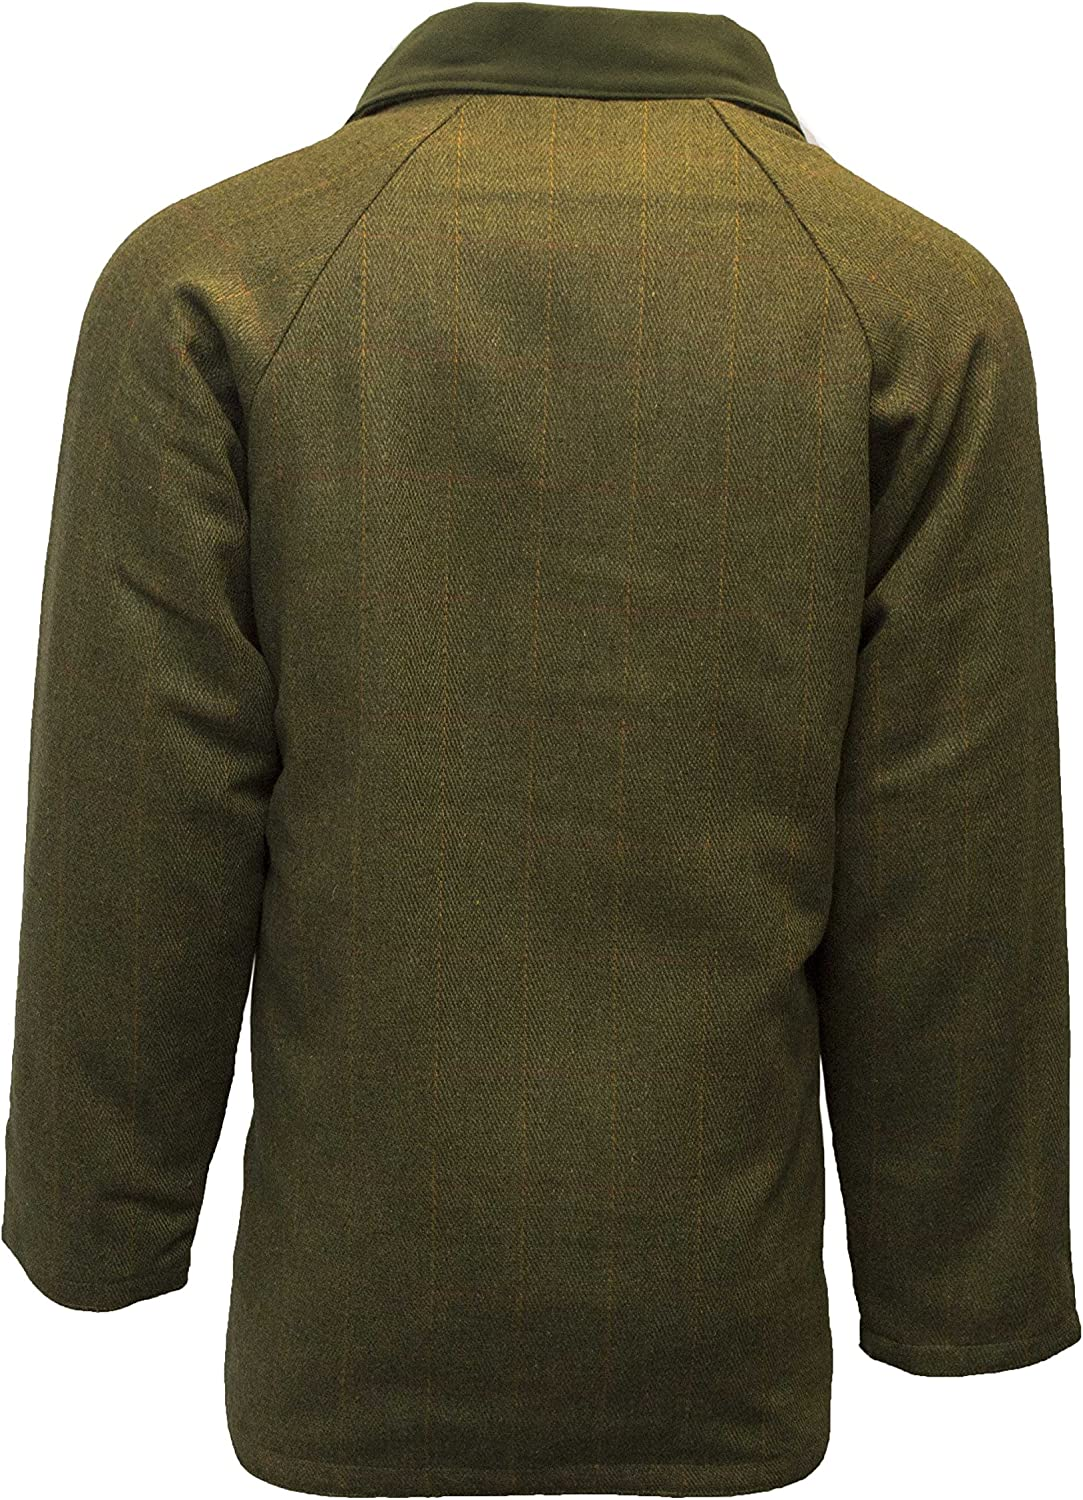 TWEED SHOOTING VEST WOOL BUTTON FRONTED NEW SIZES M//L//XL//XXL HUNTING CLAYS